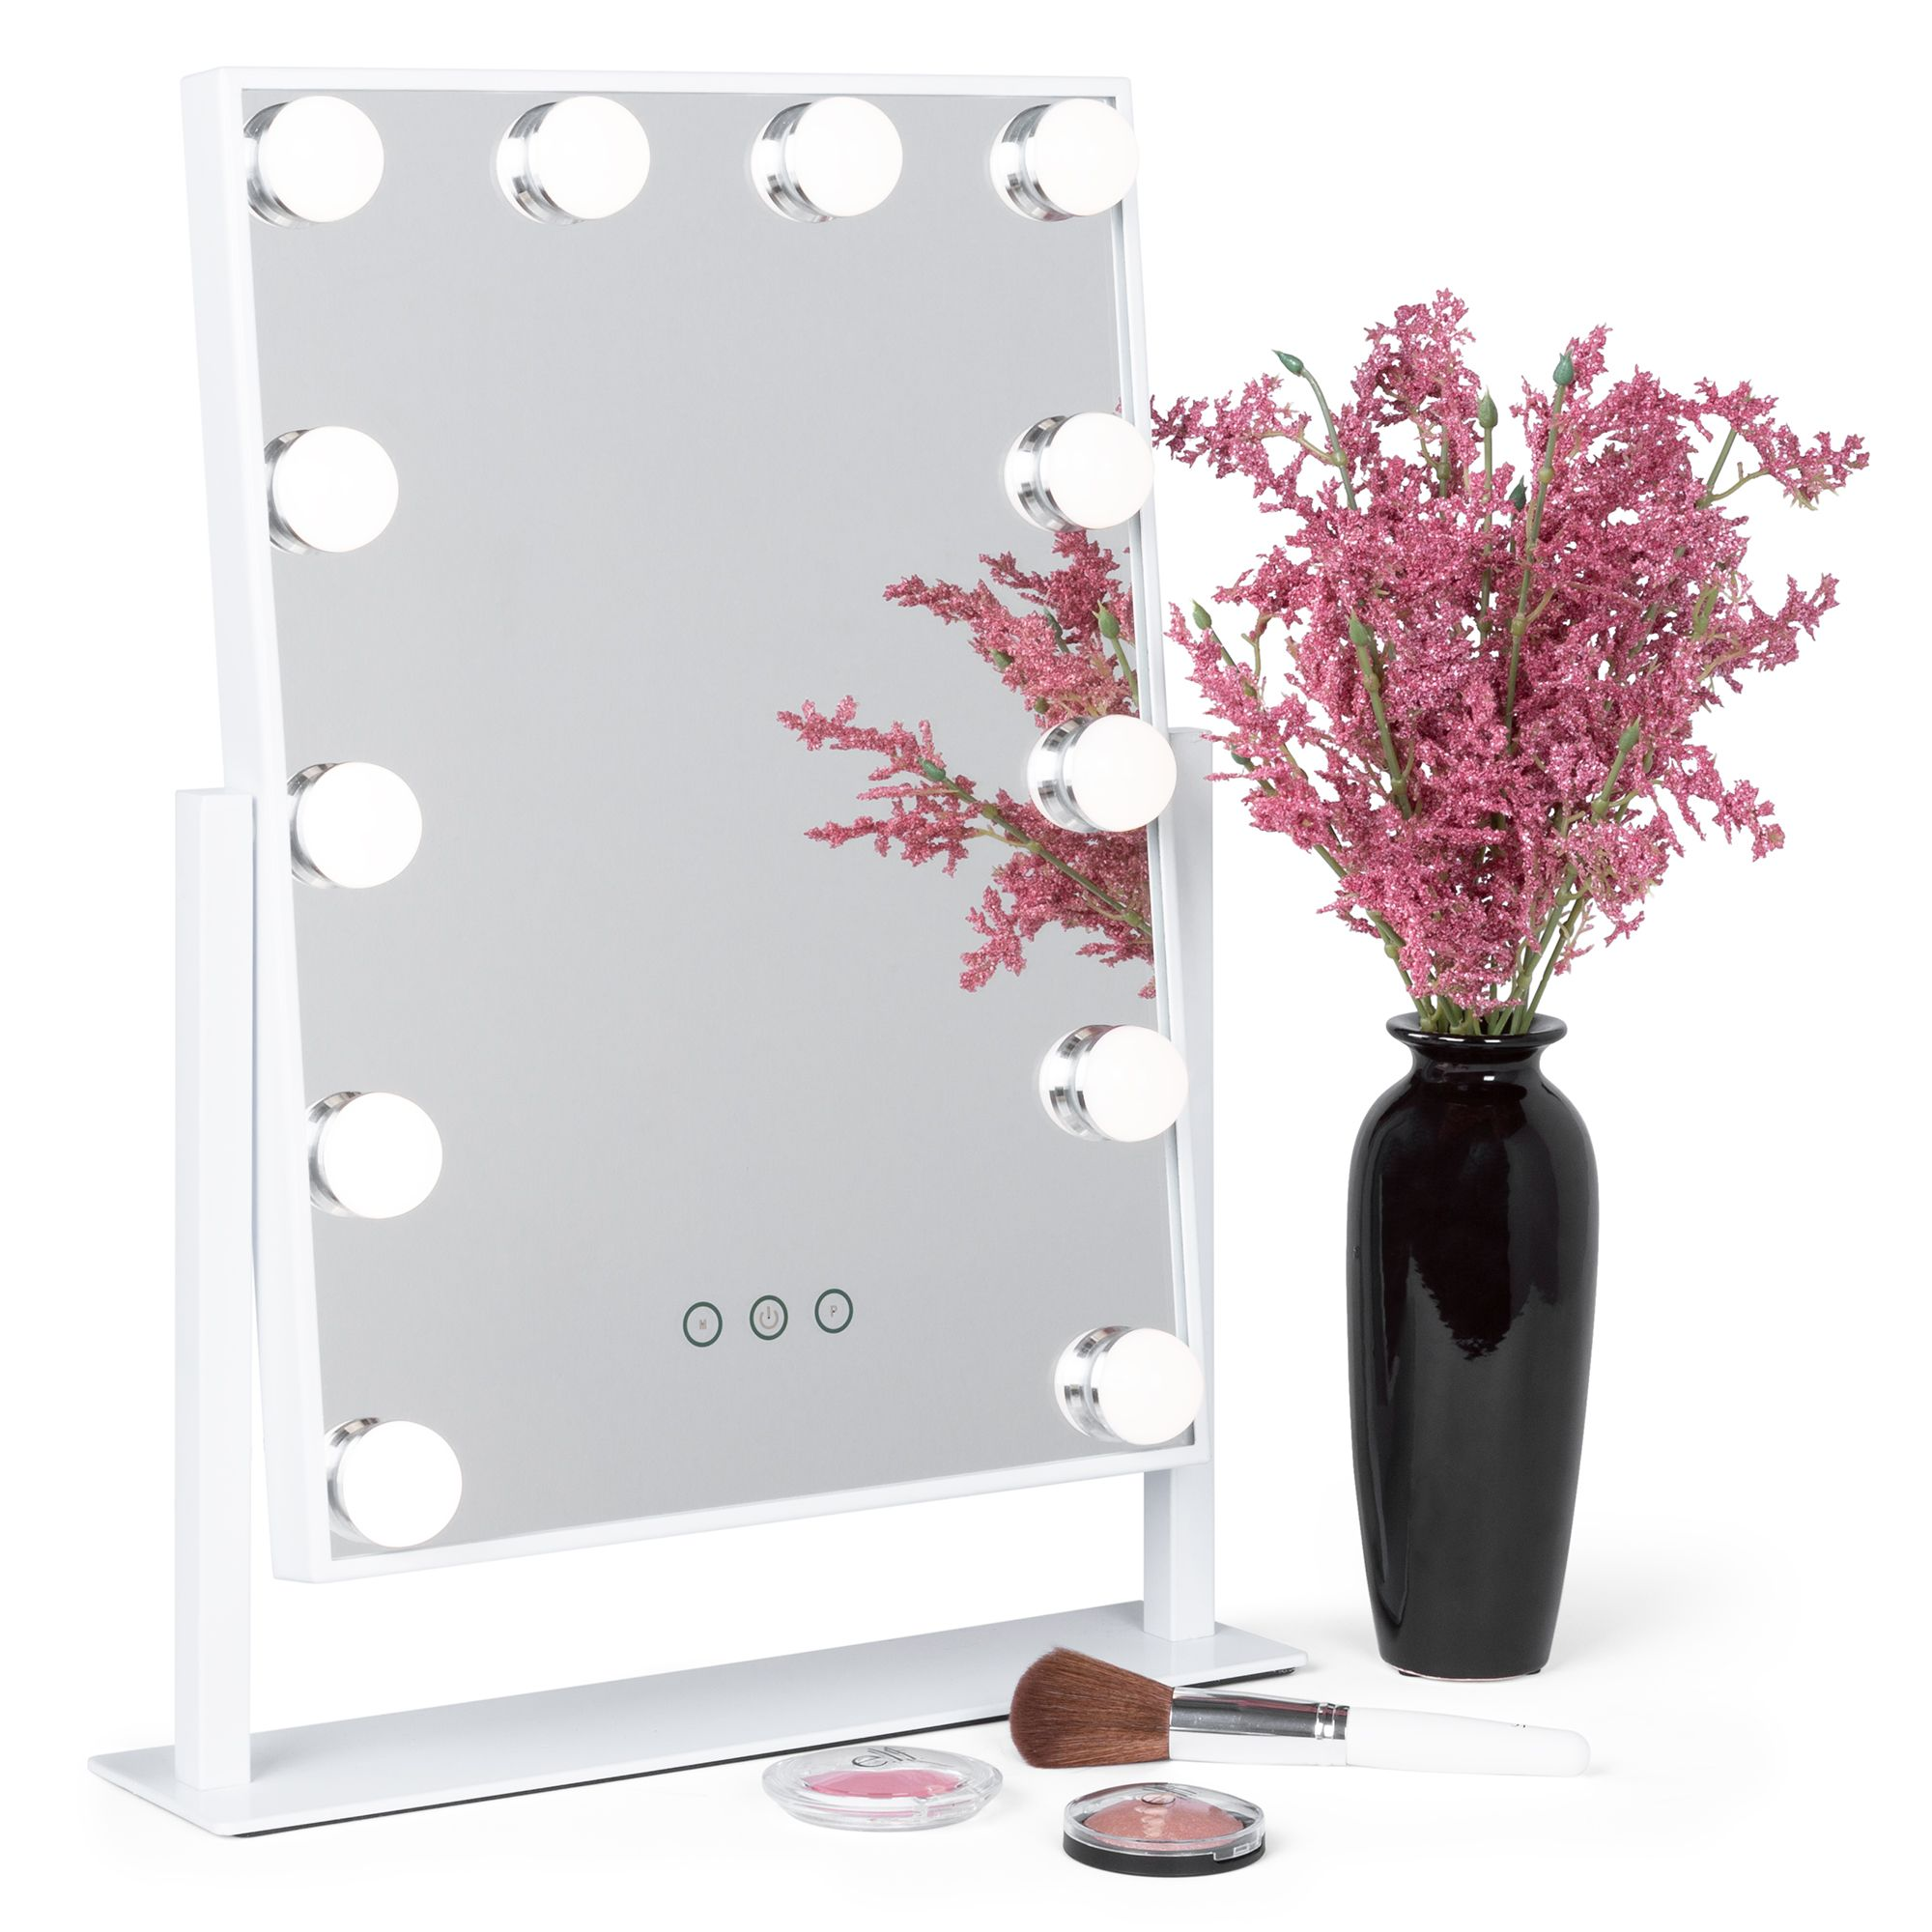 Best Choice Products Hollywood Makeup Vanity Mirror w